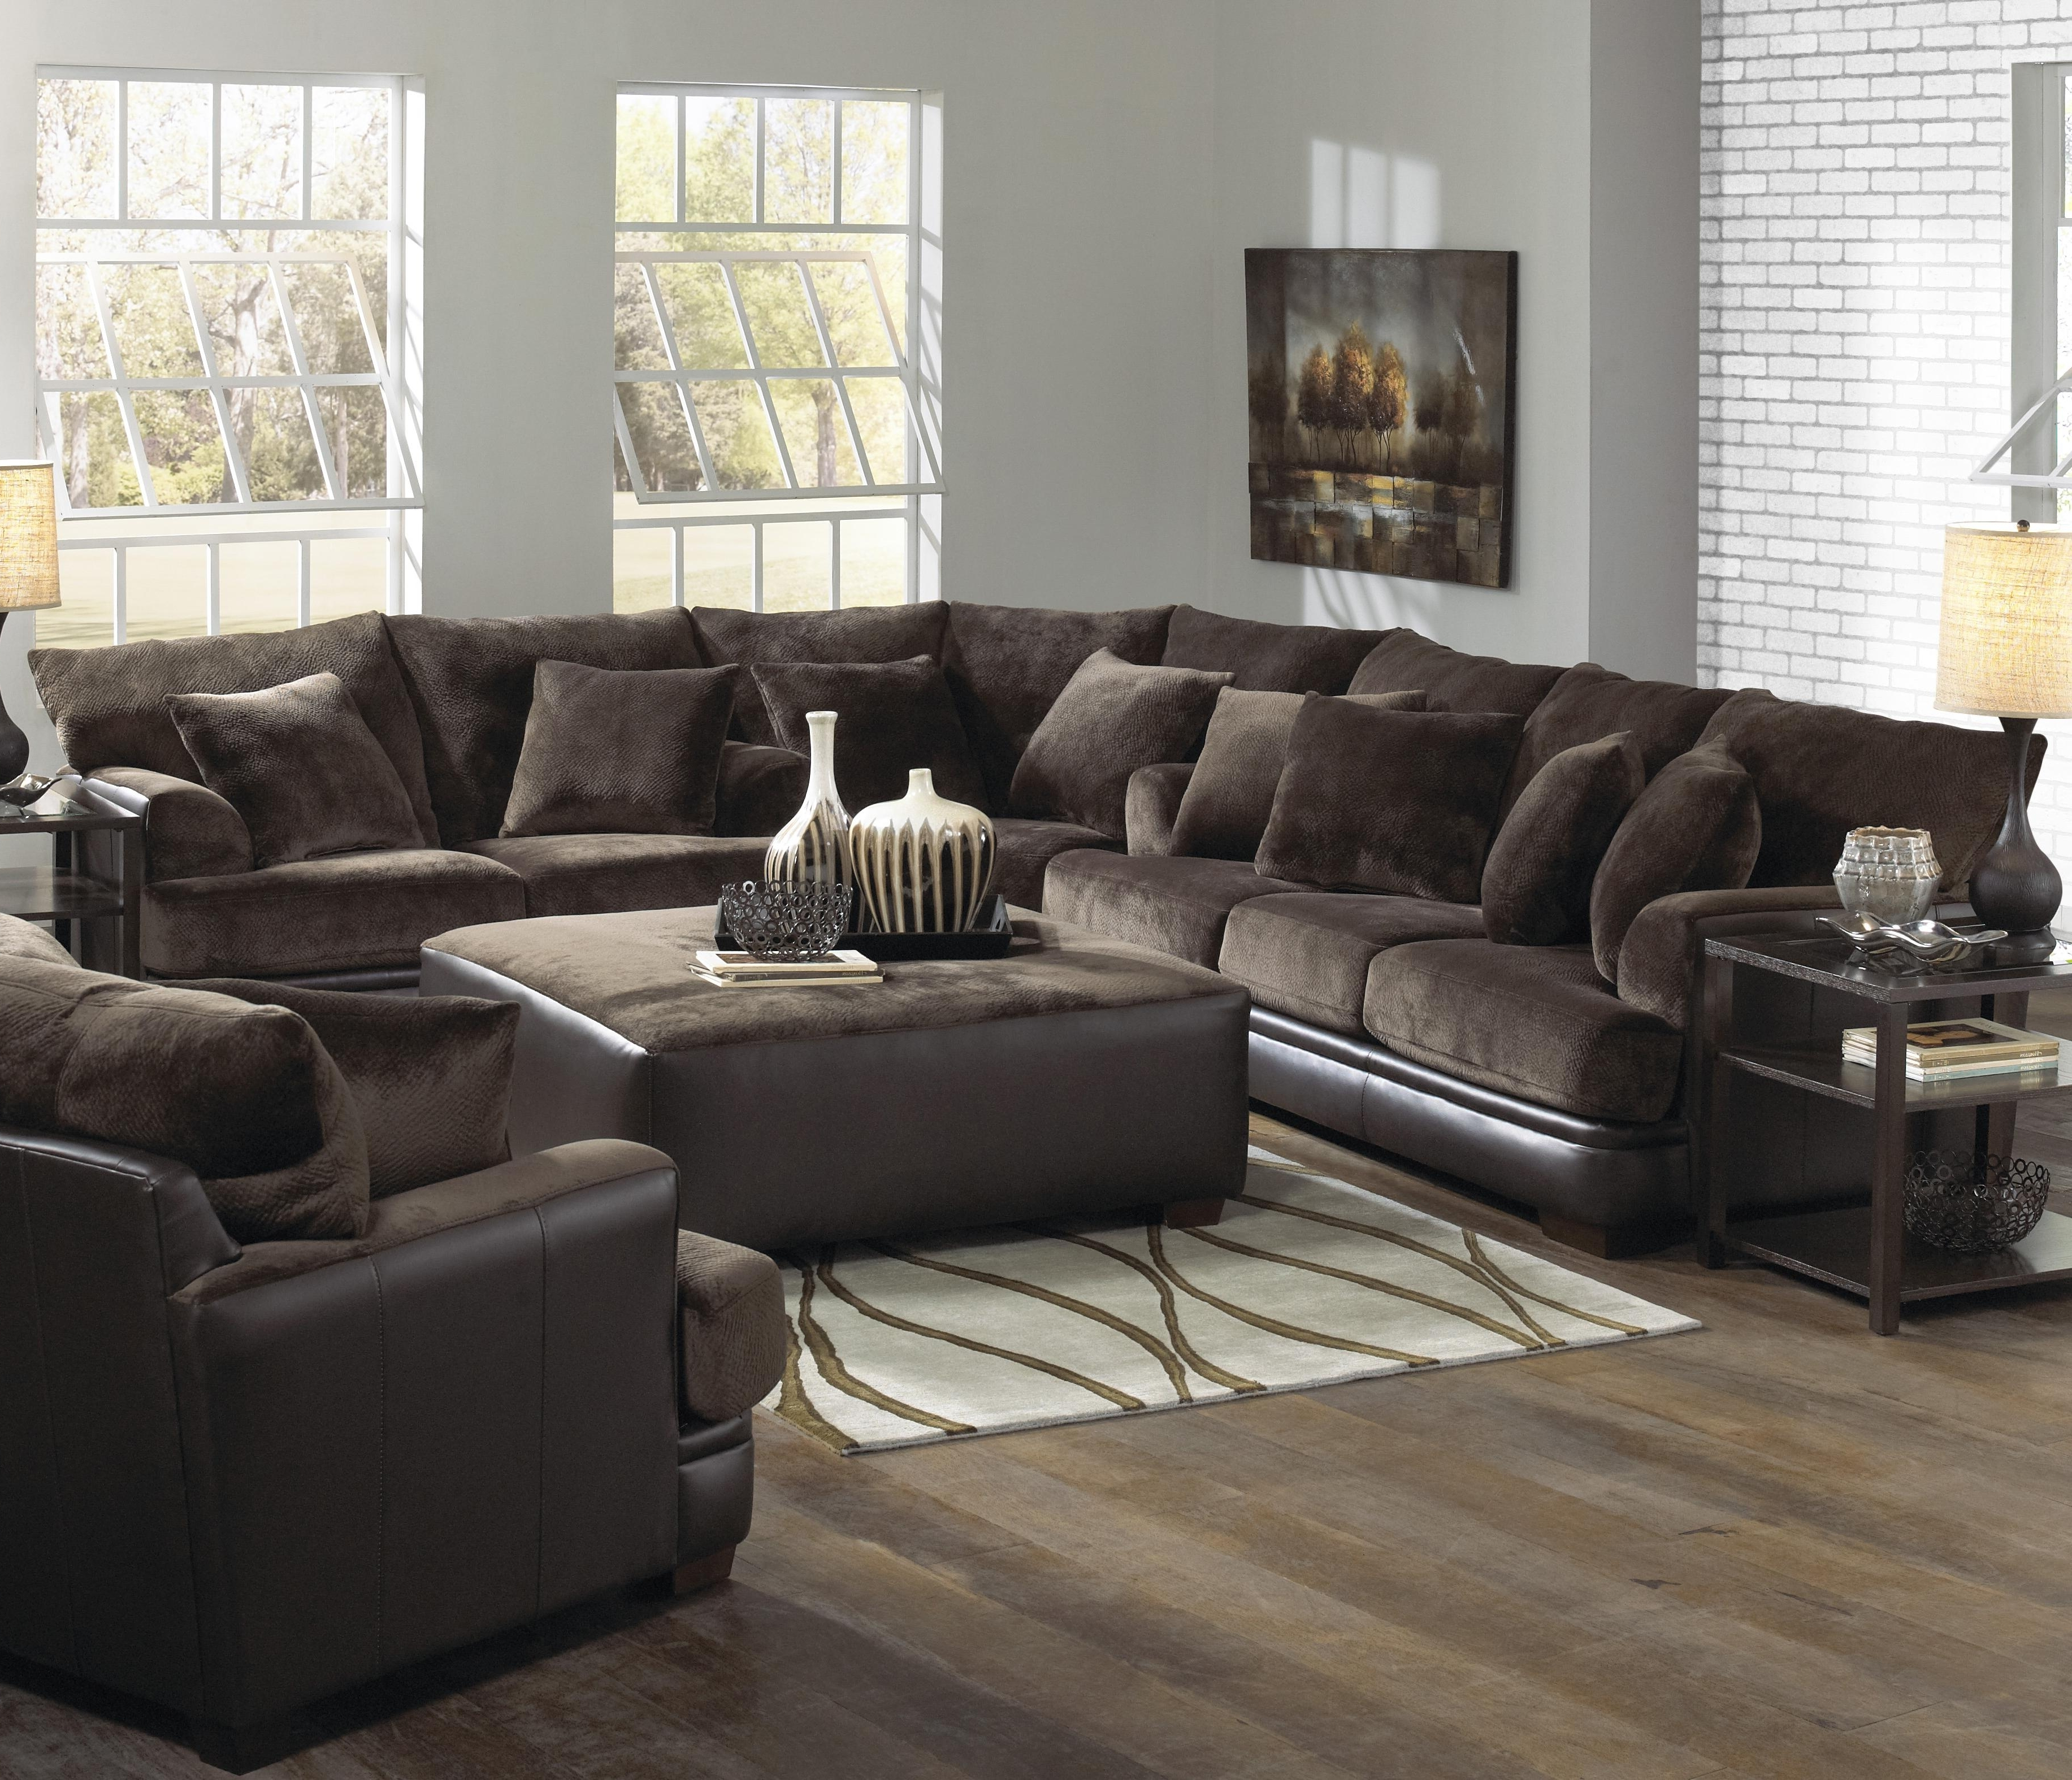 Amazing Large U Shaped Sectional Sofa 18 On Reclining Sectional Pertaining To Best And Newest Small U Shaped Sectional Sofas (View 11 of 15)